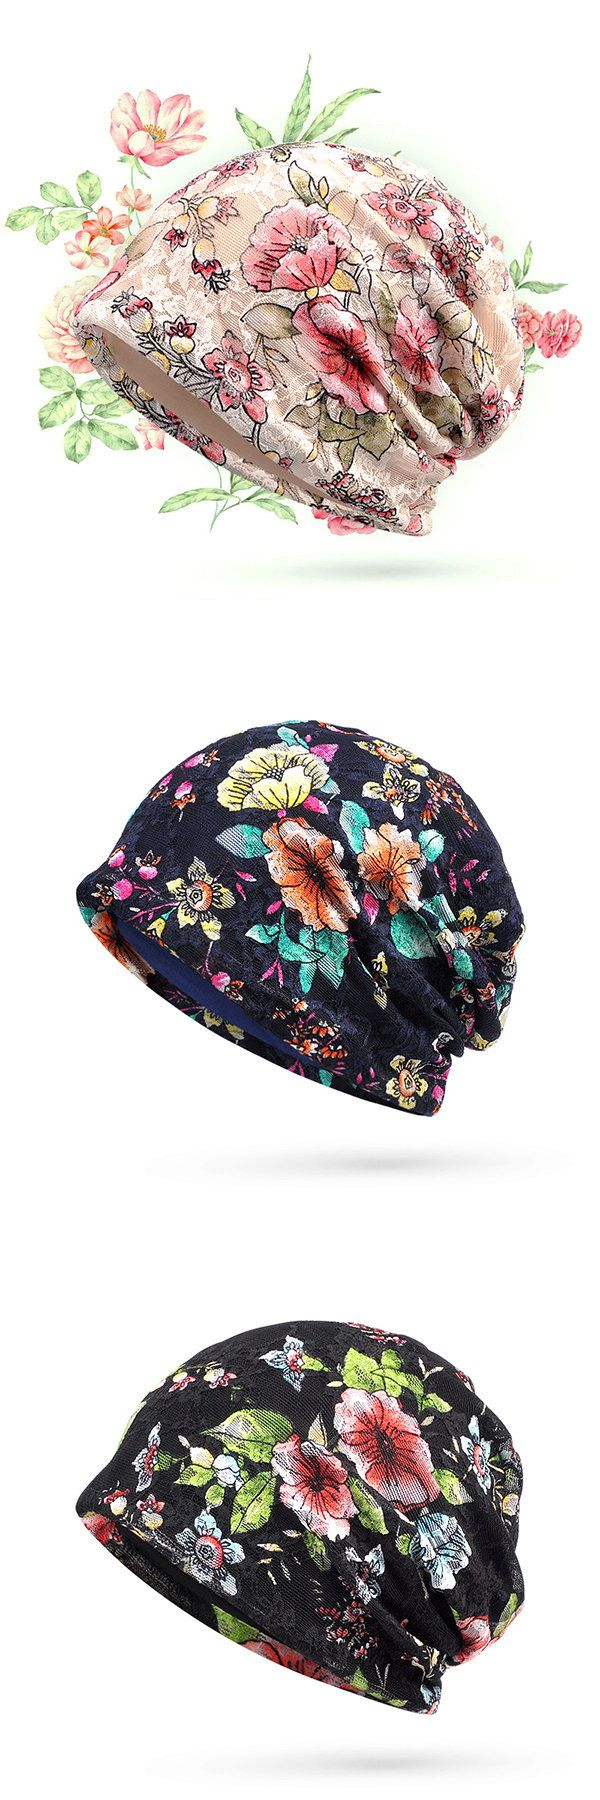 Lace Jacquard Thin Beanies Hats Travel Casual Bright Flowers Bonnet Cap For Women